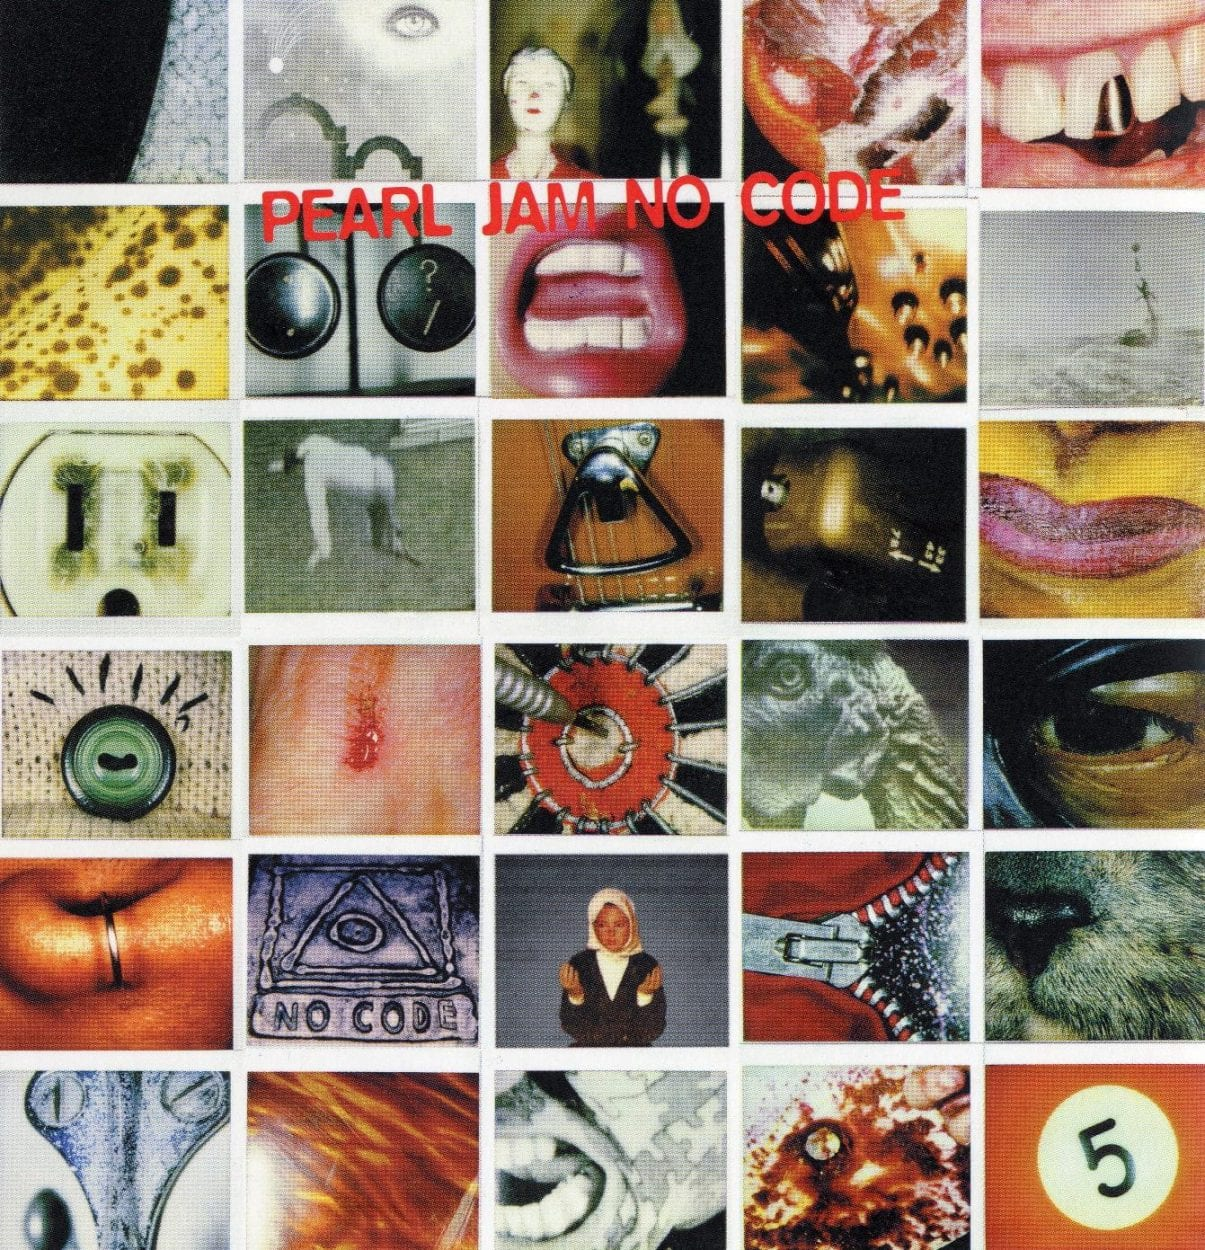 A six-by-five grid of small polaroid pictures, with Pearl Jam No Code written in red font.